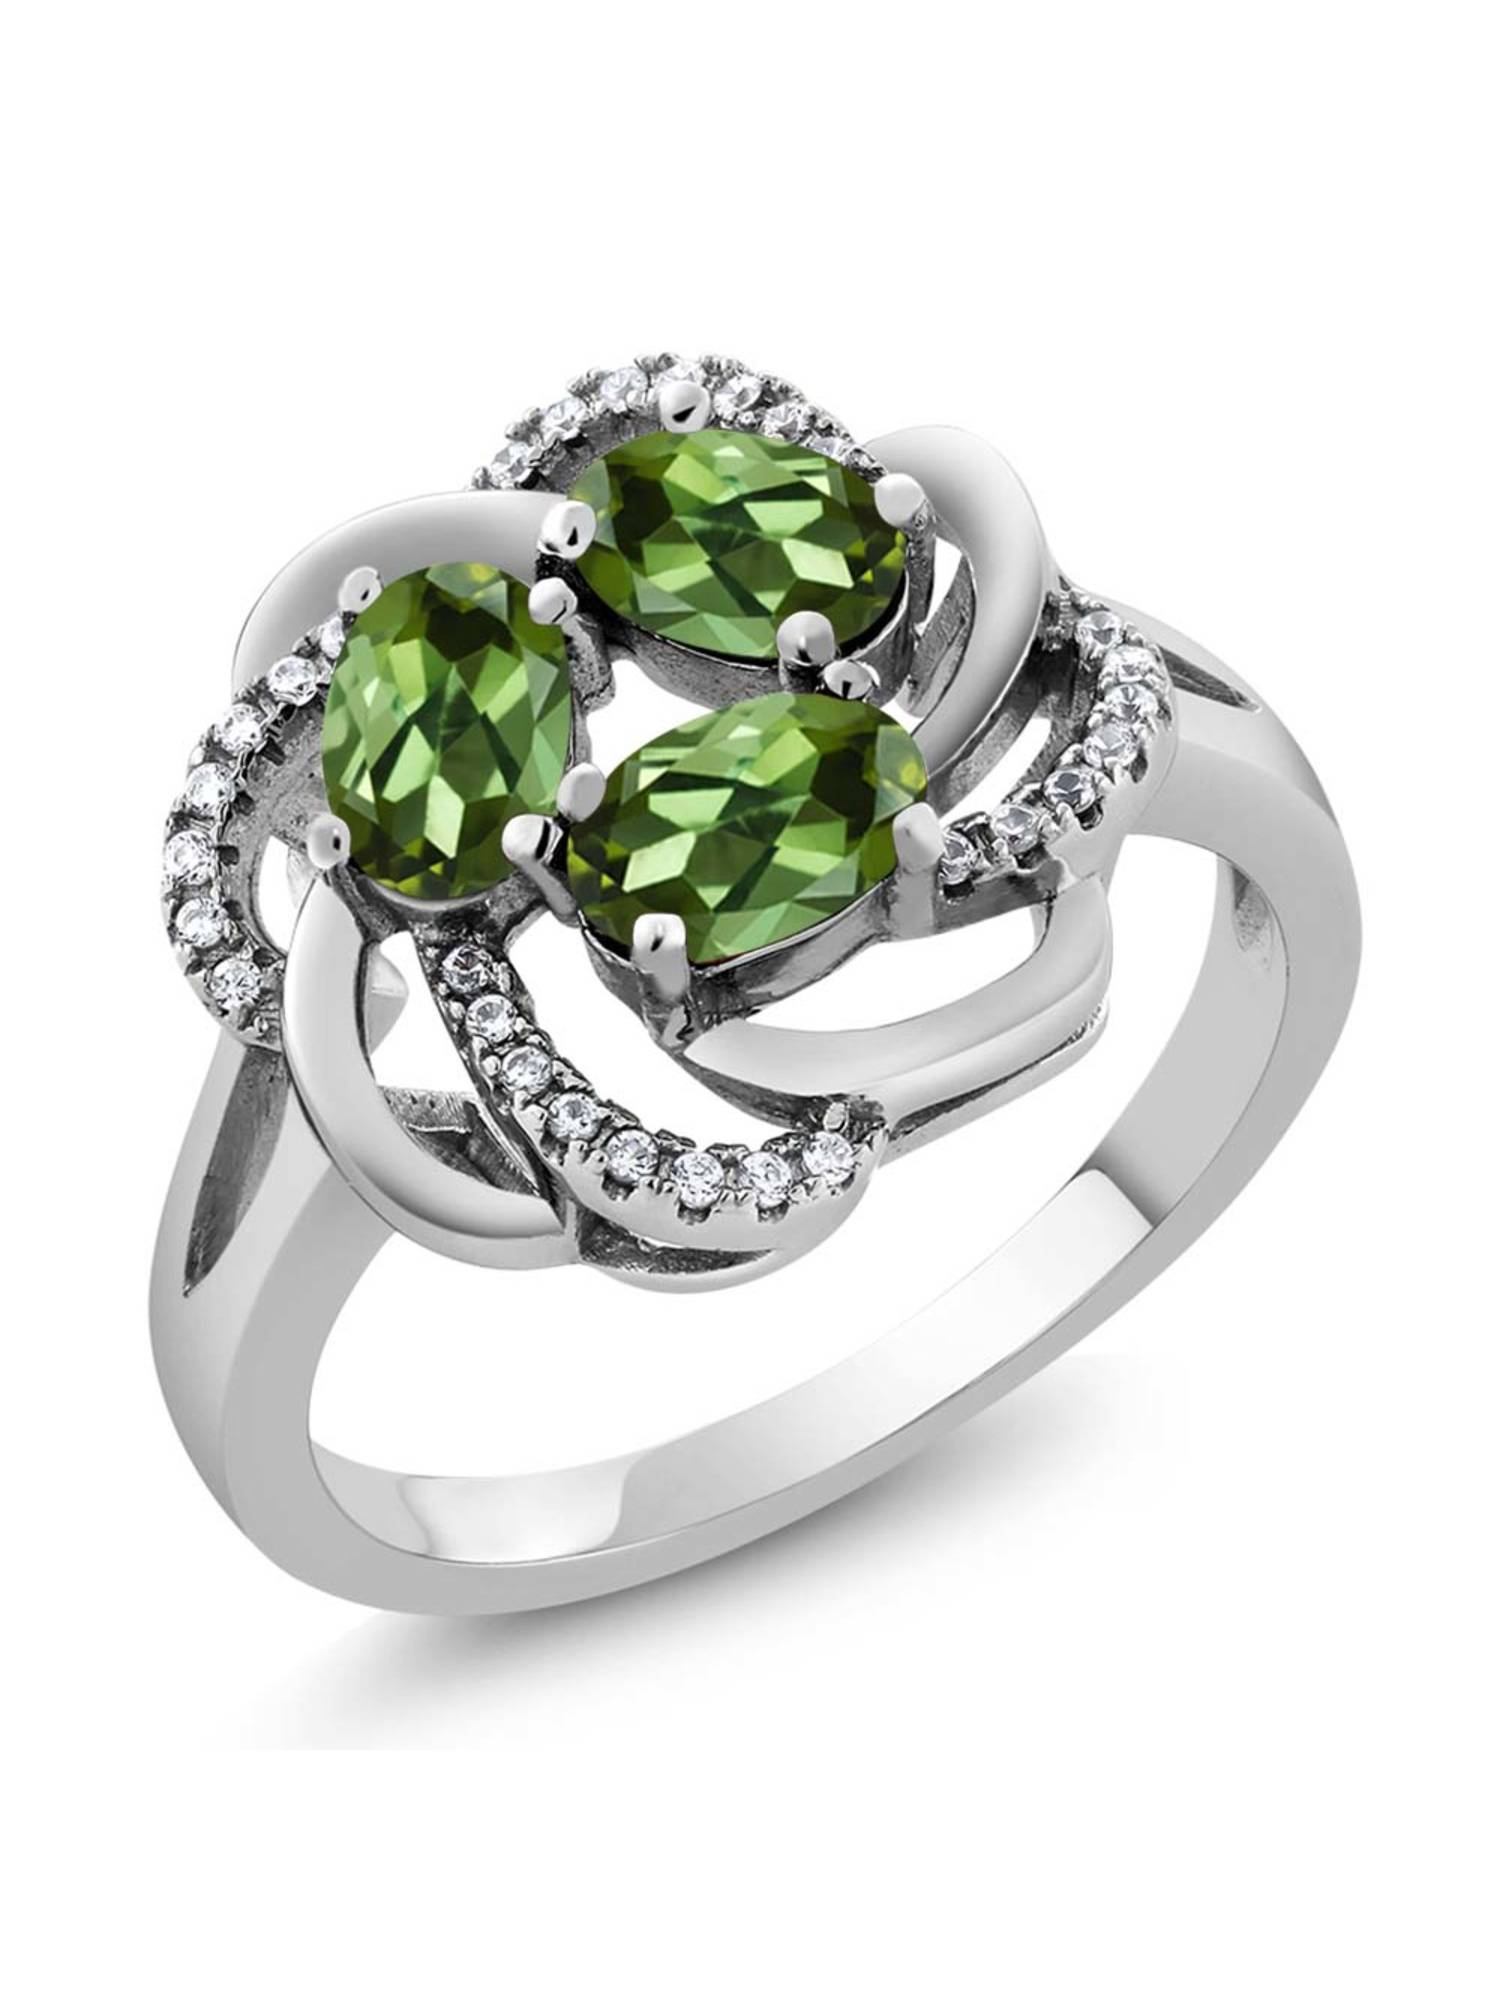 1.87 Ct Oval Green Tourmaline 925 Sterling Silver Ring by